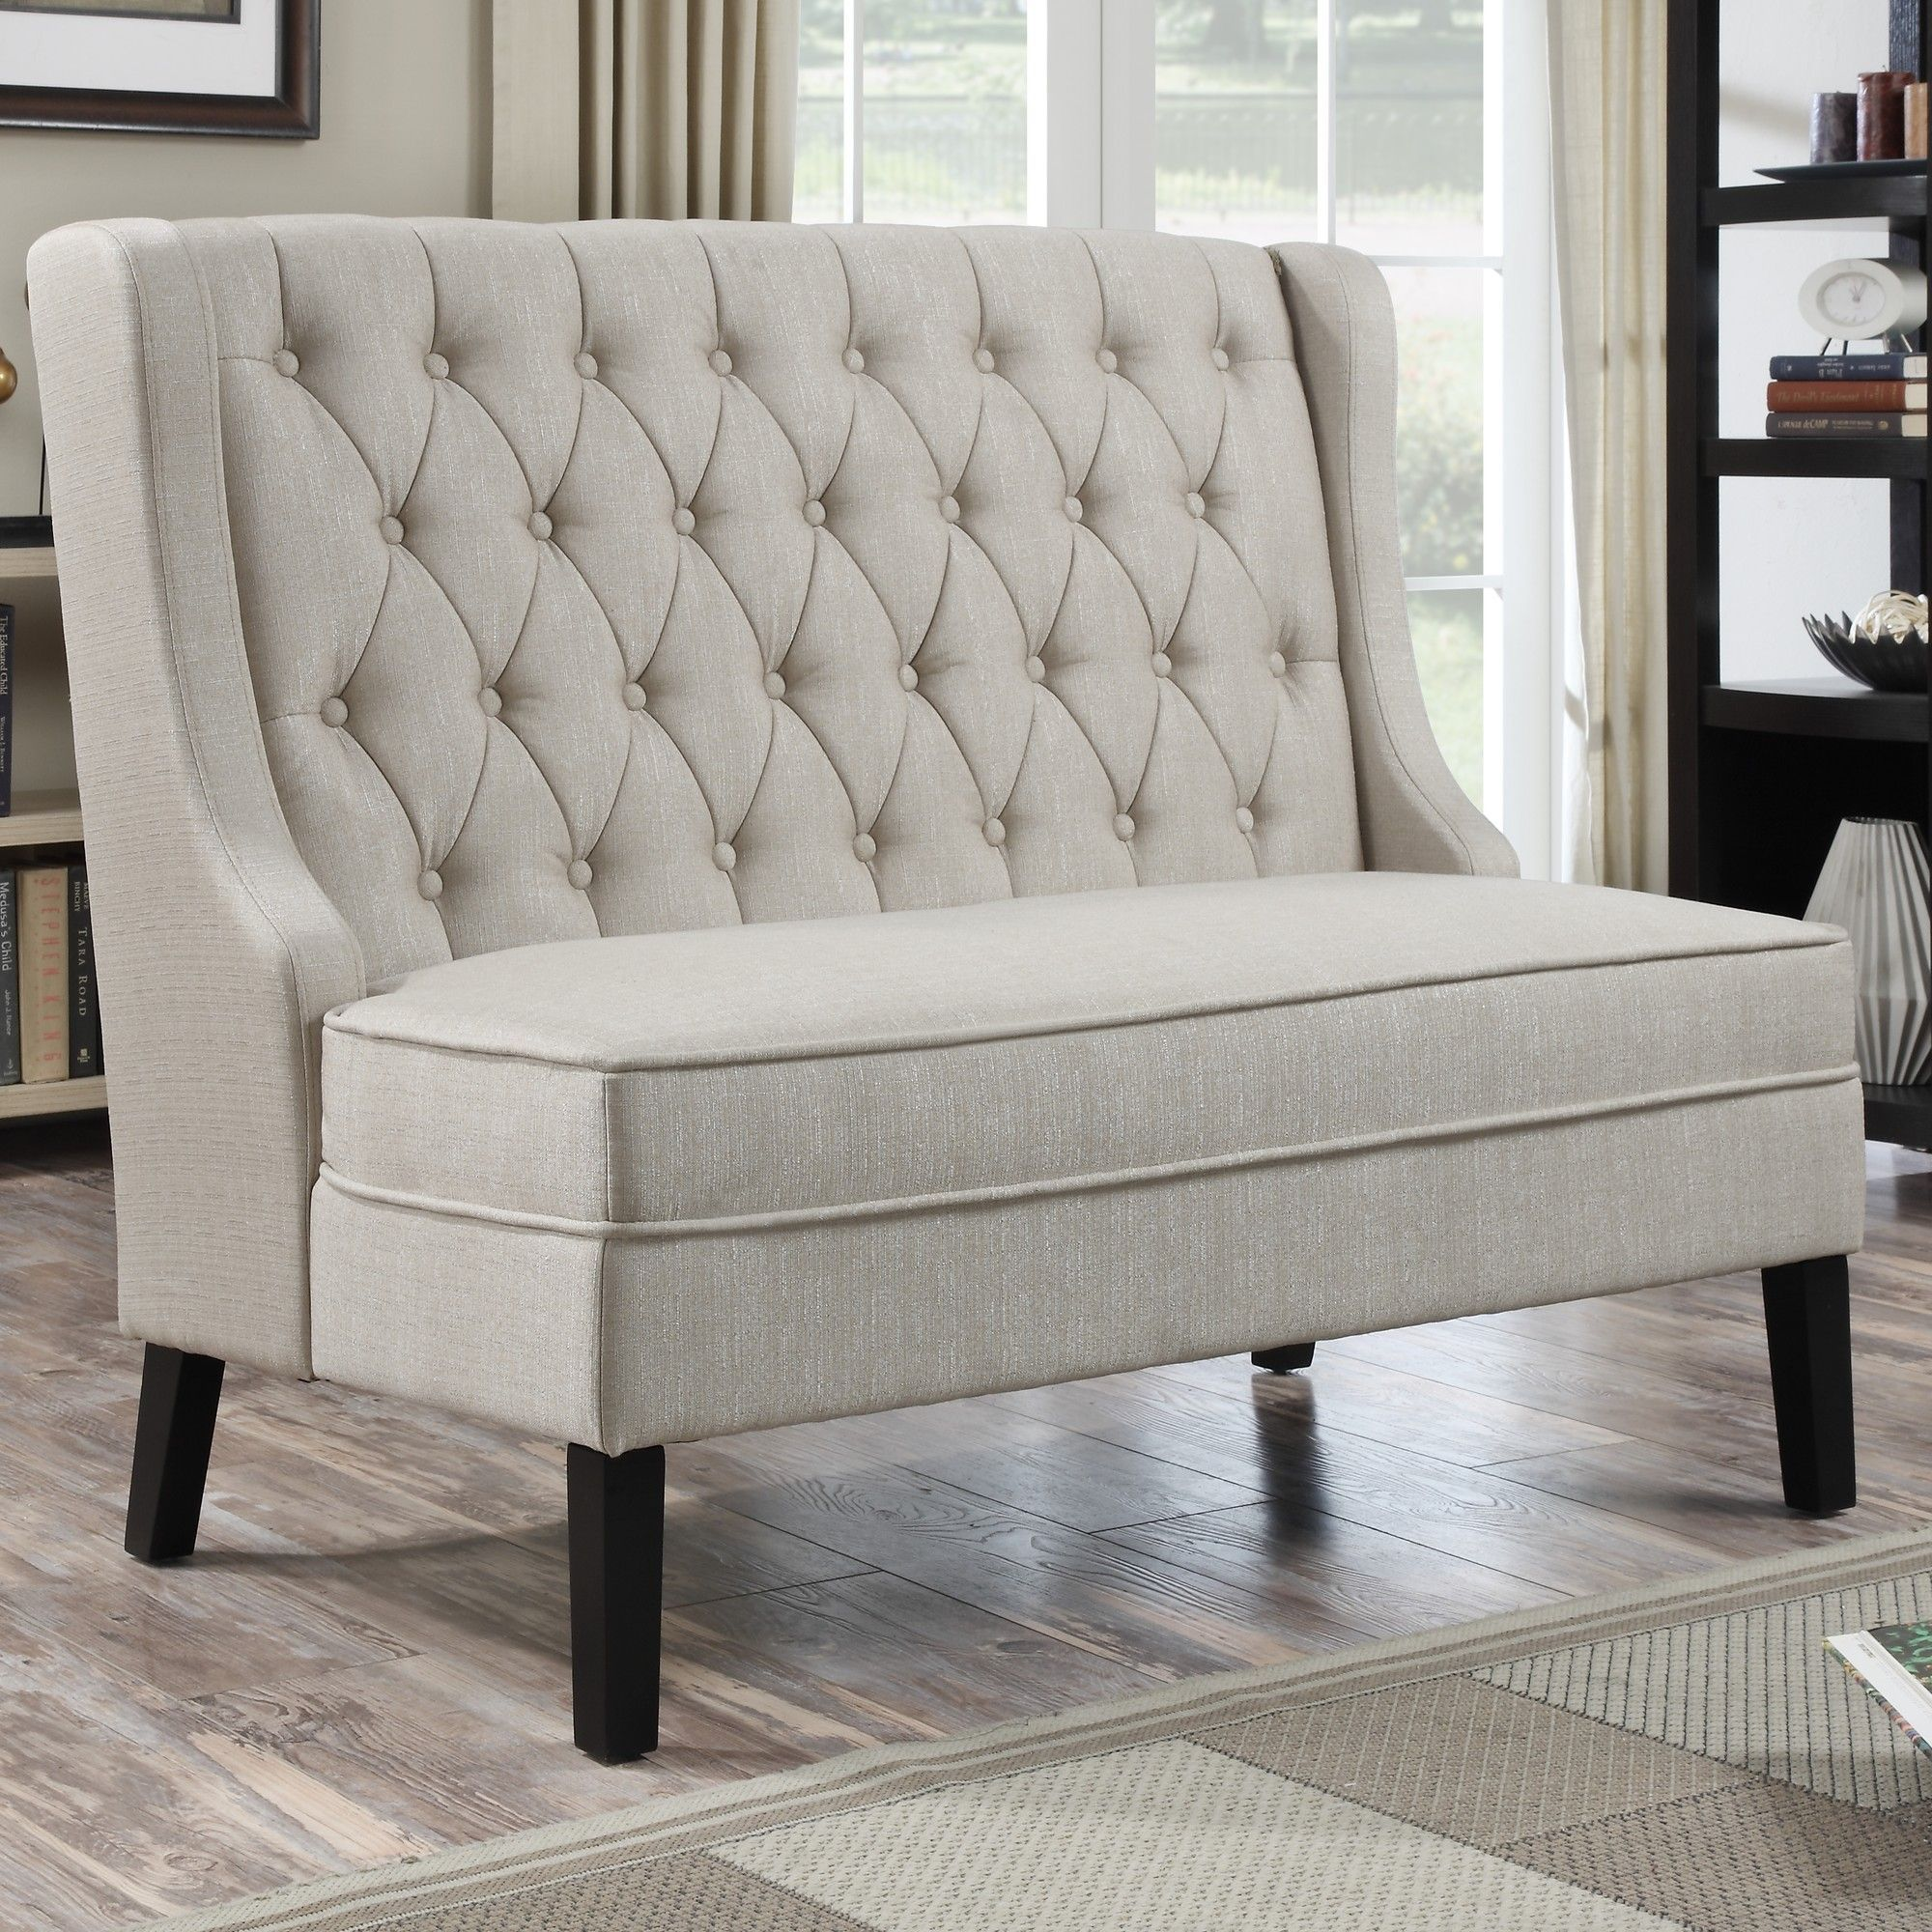 Darby Home Co Curran Upholstered Bench Upholstered Banquette Dining Room Design Banquette Bench